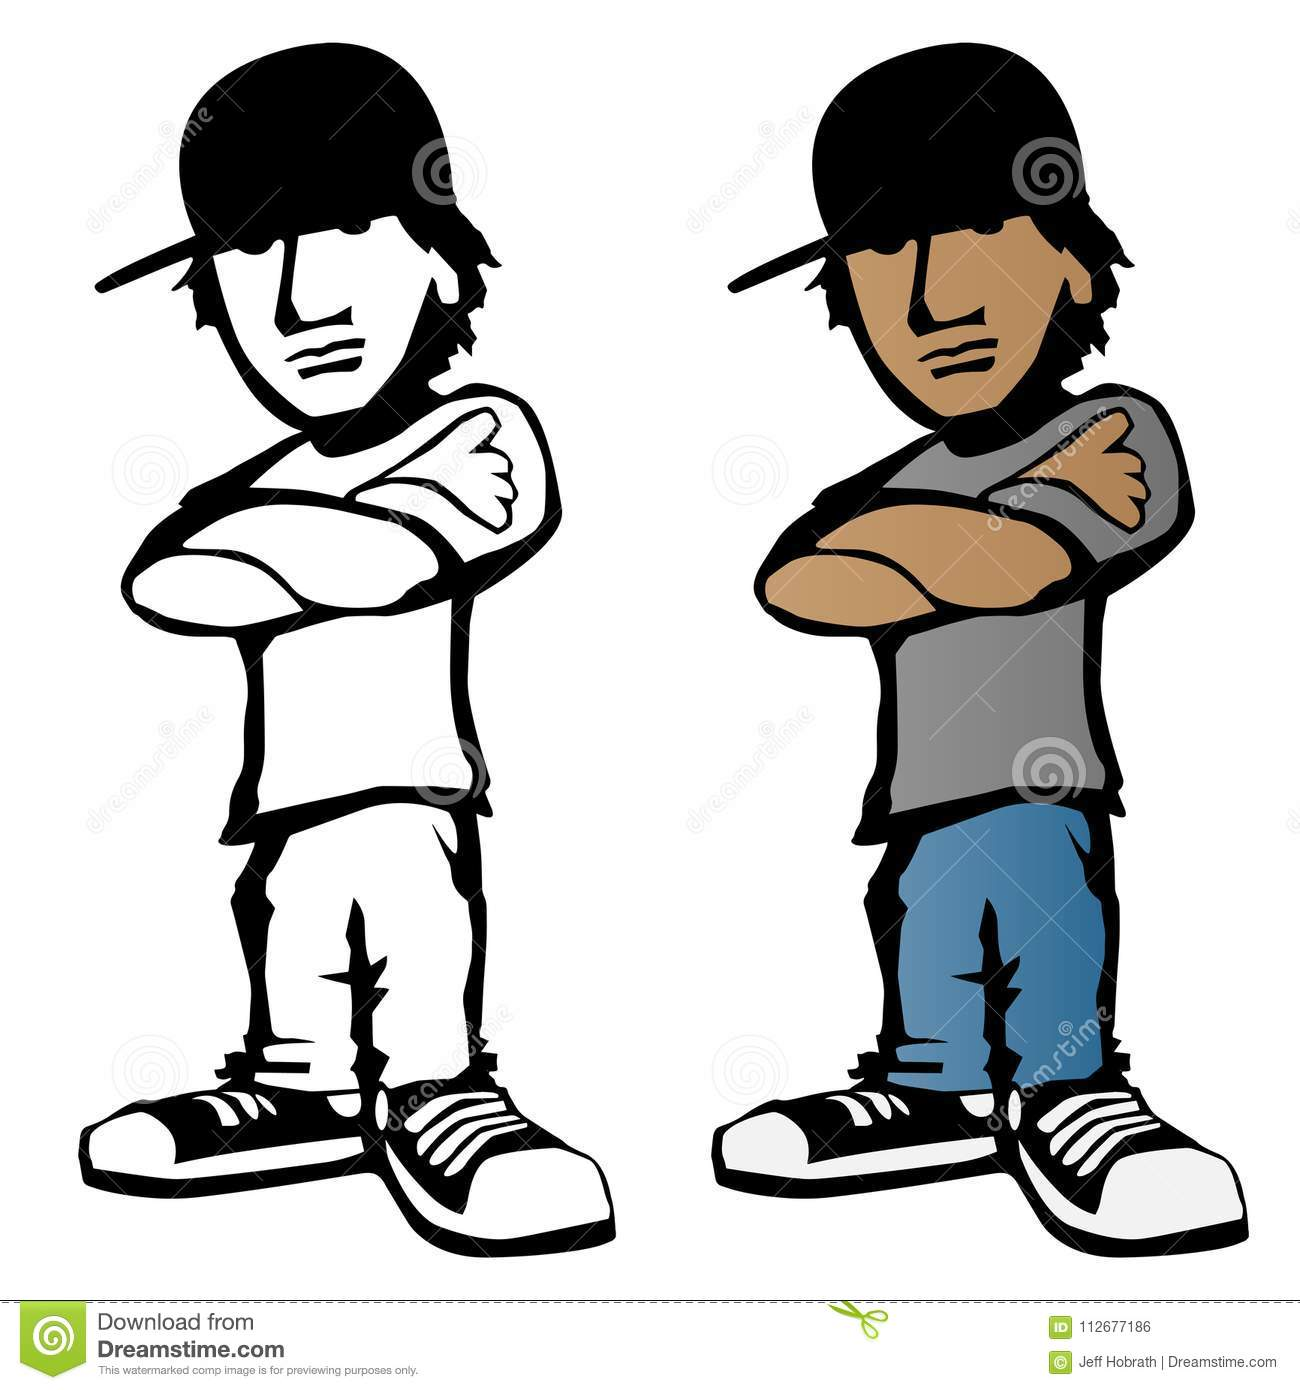 Cool young male cartoon character vector illustration